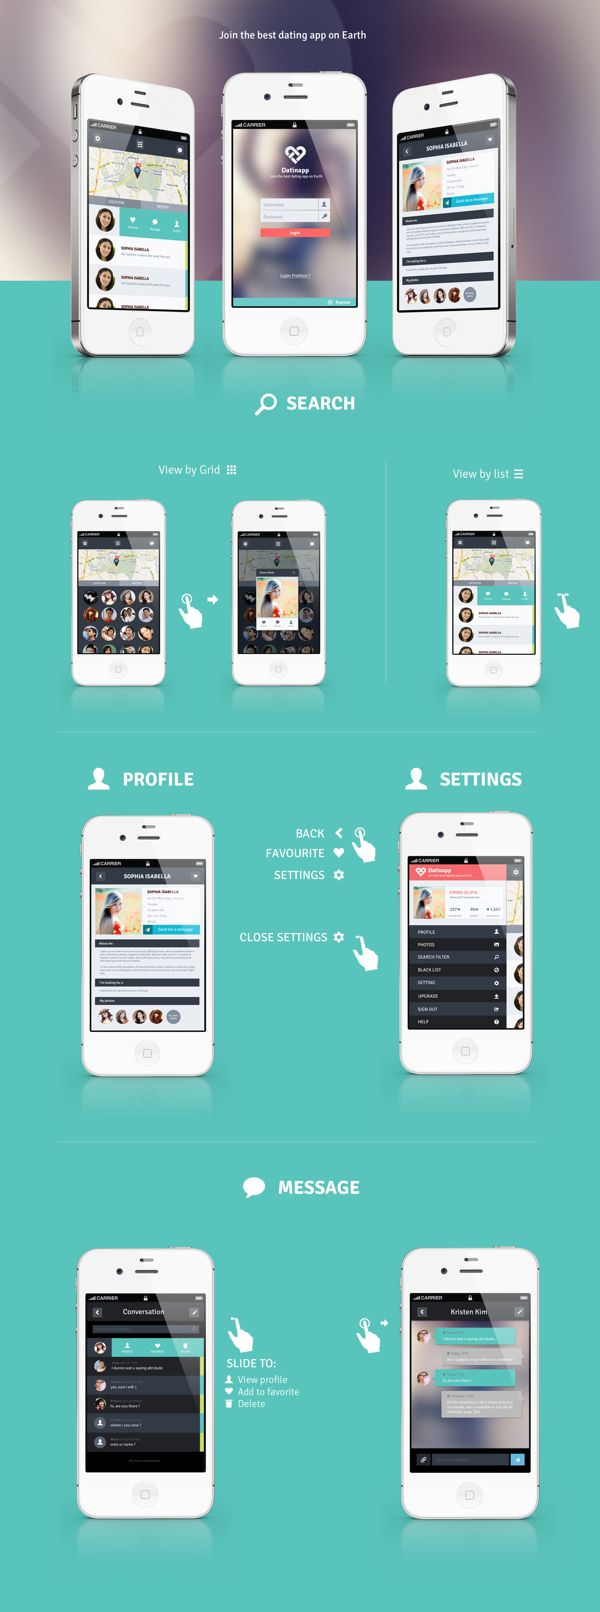 IOS Dating App Proposal *** An unused proposal for a dating app design by Tony Huynh, via Behance